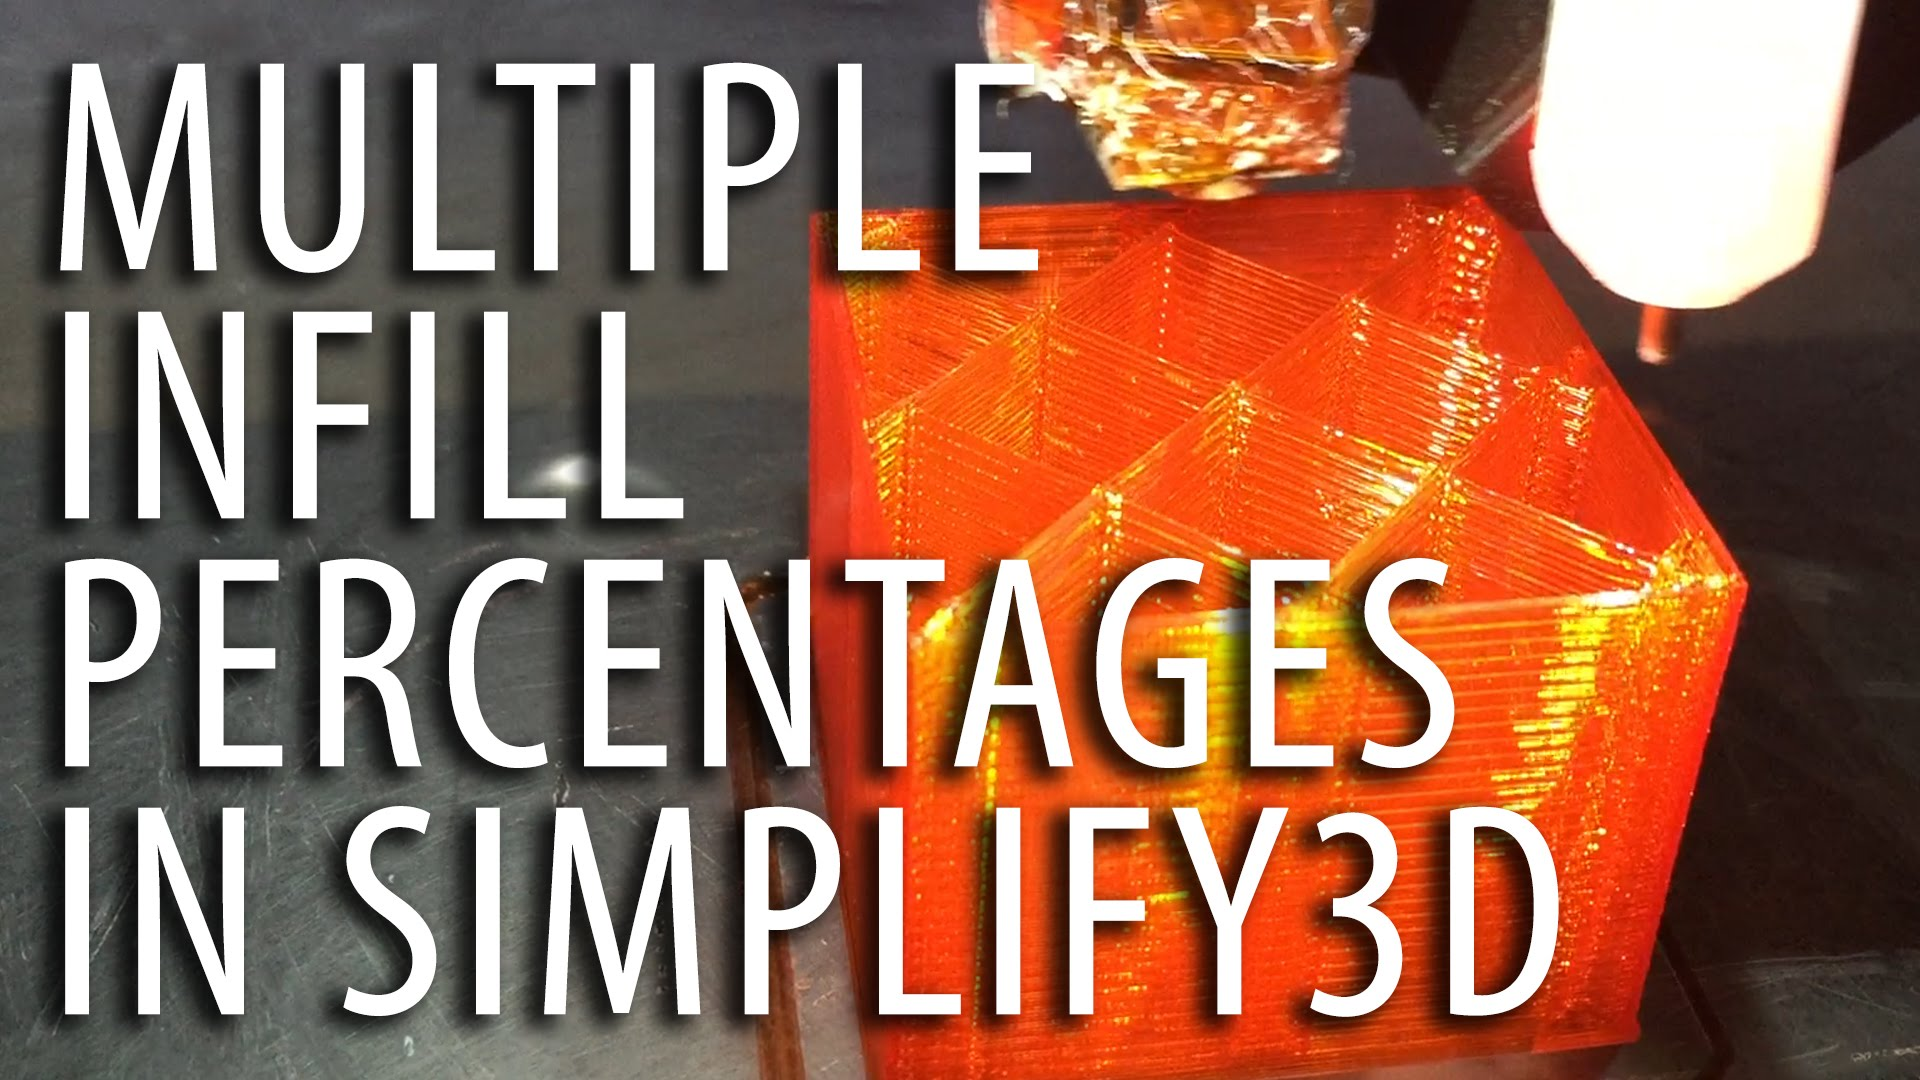 How To Use Multiple Infill Percentages When 3D Printing With Simplify3D